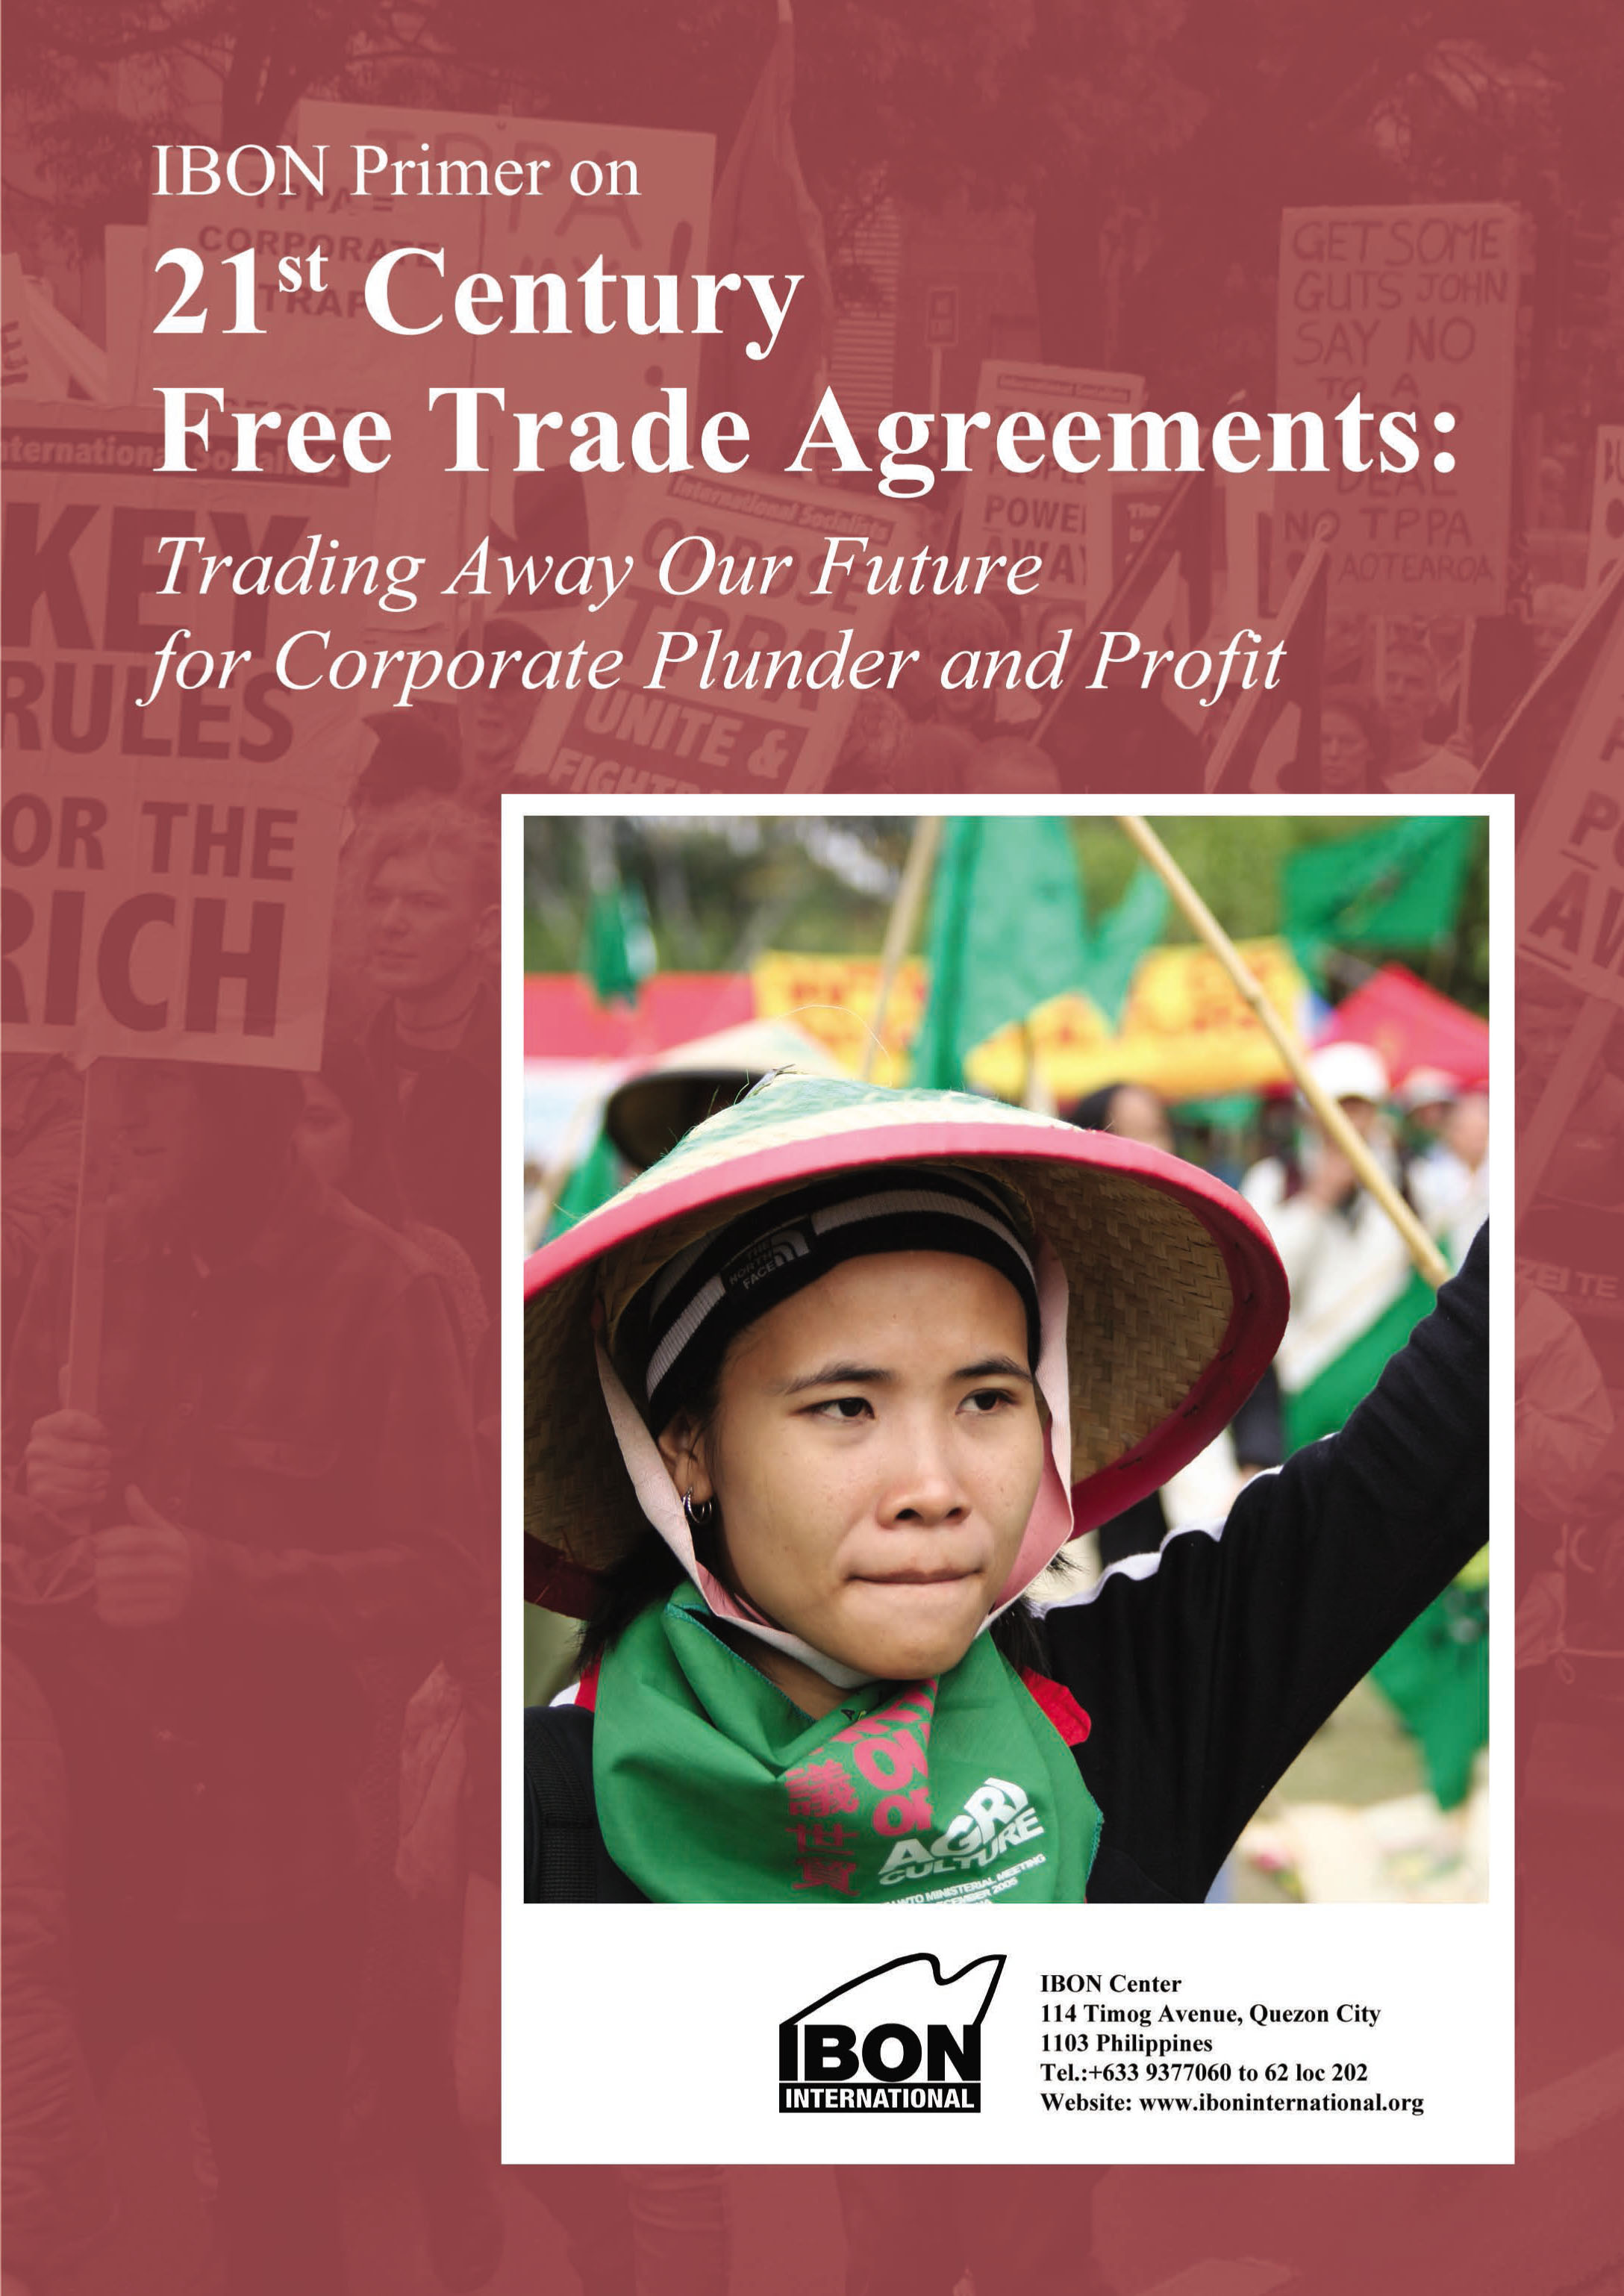 IBON Primer on 21st Century Free Trade Agreements